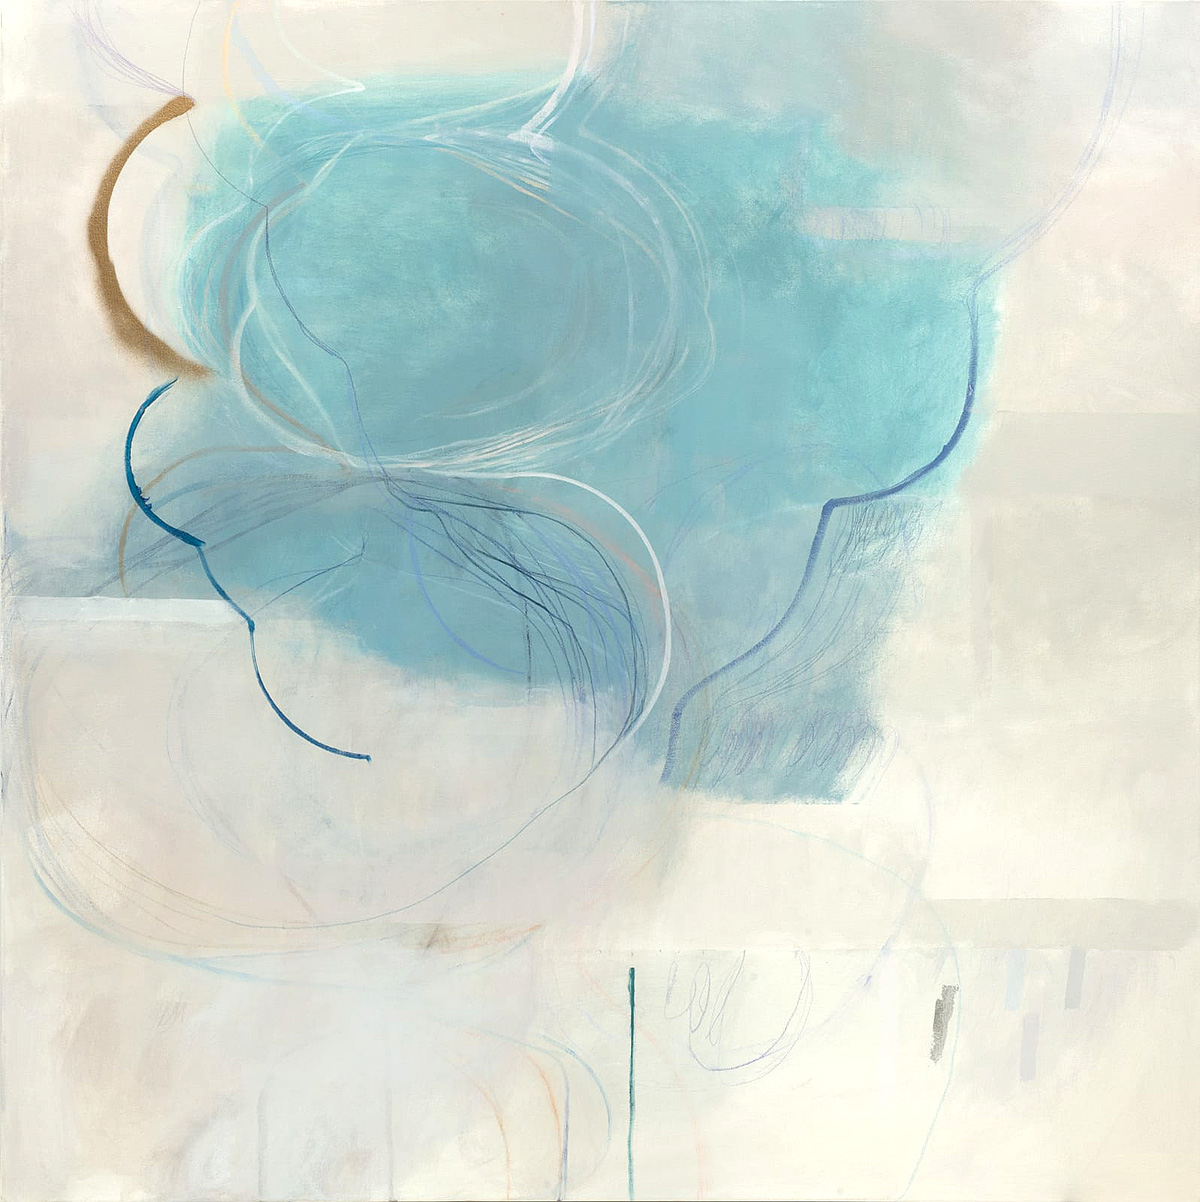 Ele Pack, 'Made of Air', mixed media on canvas